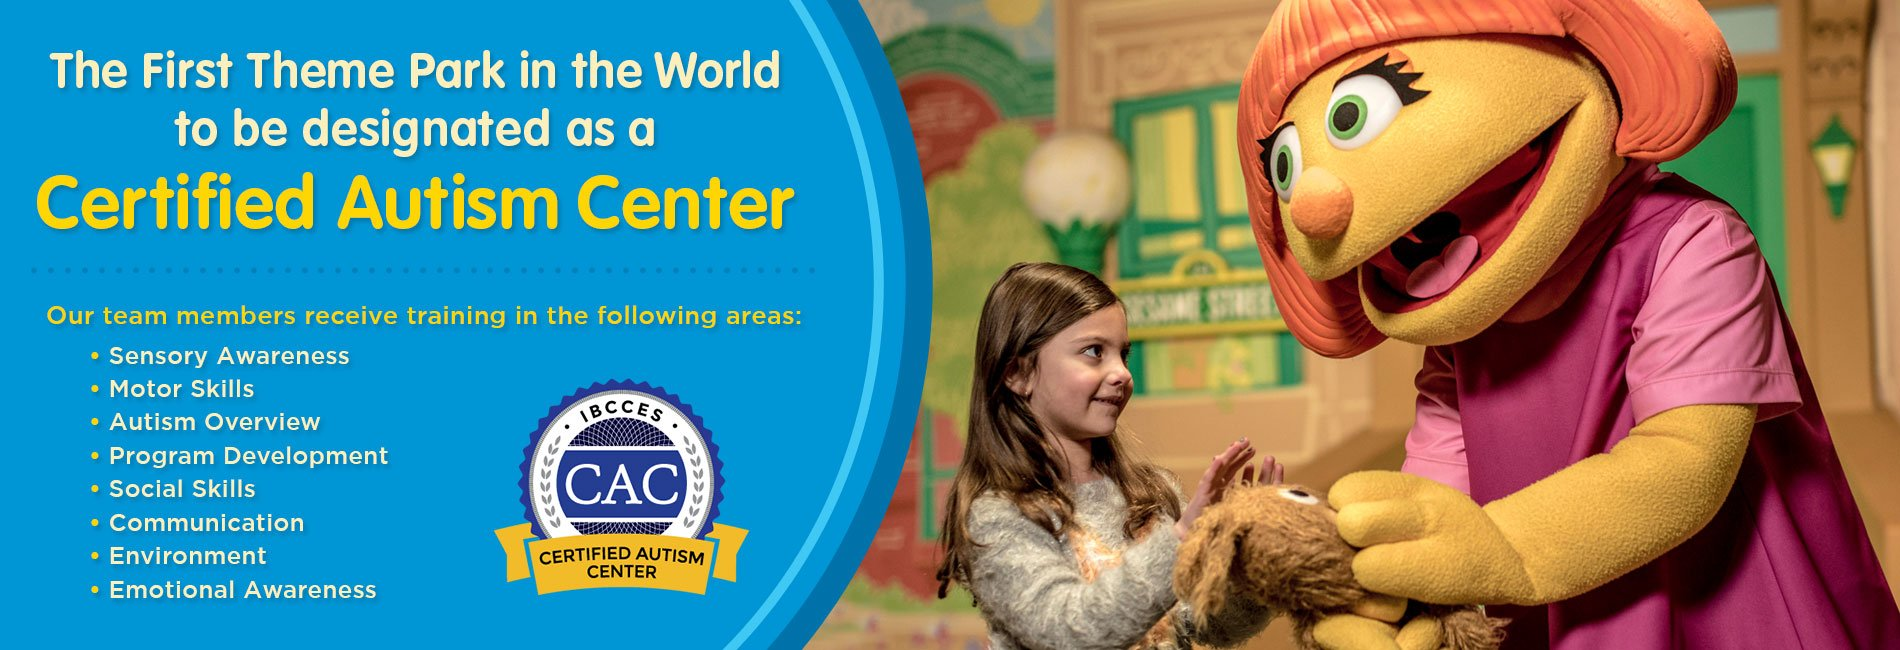 Sesame Place Has Partnered With The International Board Of Credentialing And Continuing Education Standards Ibcces A Global Leader In Online Training